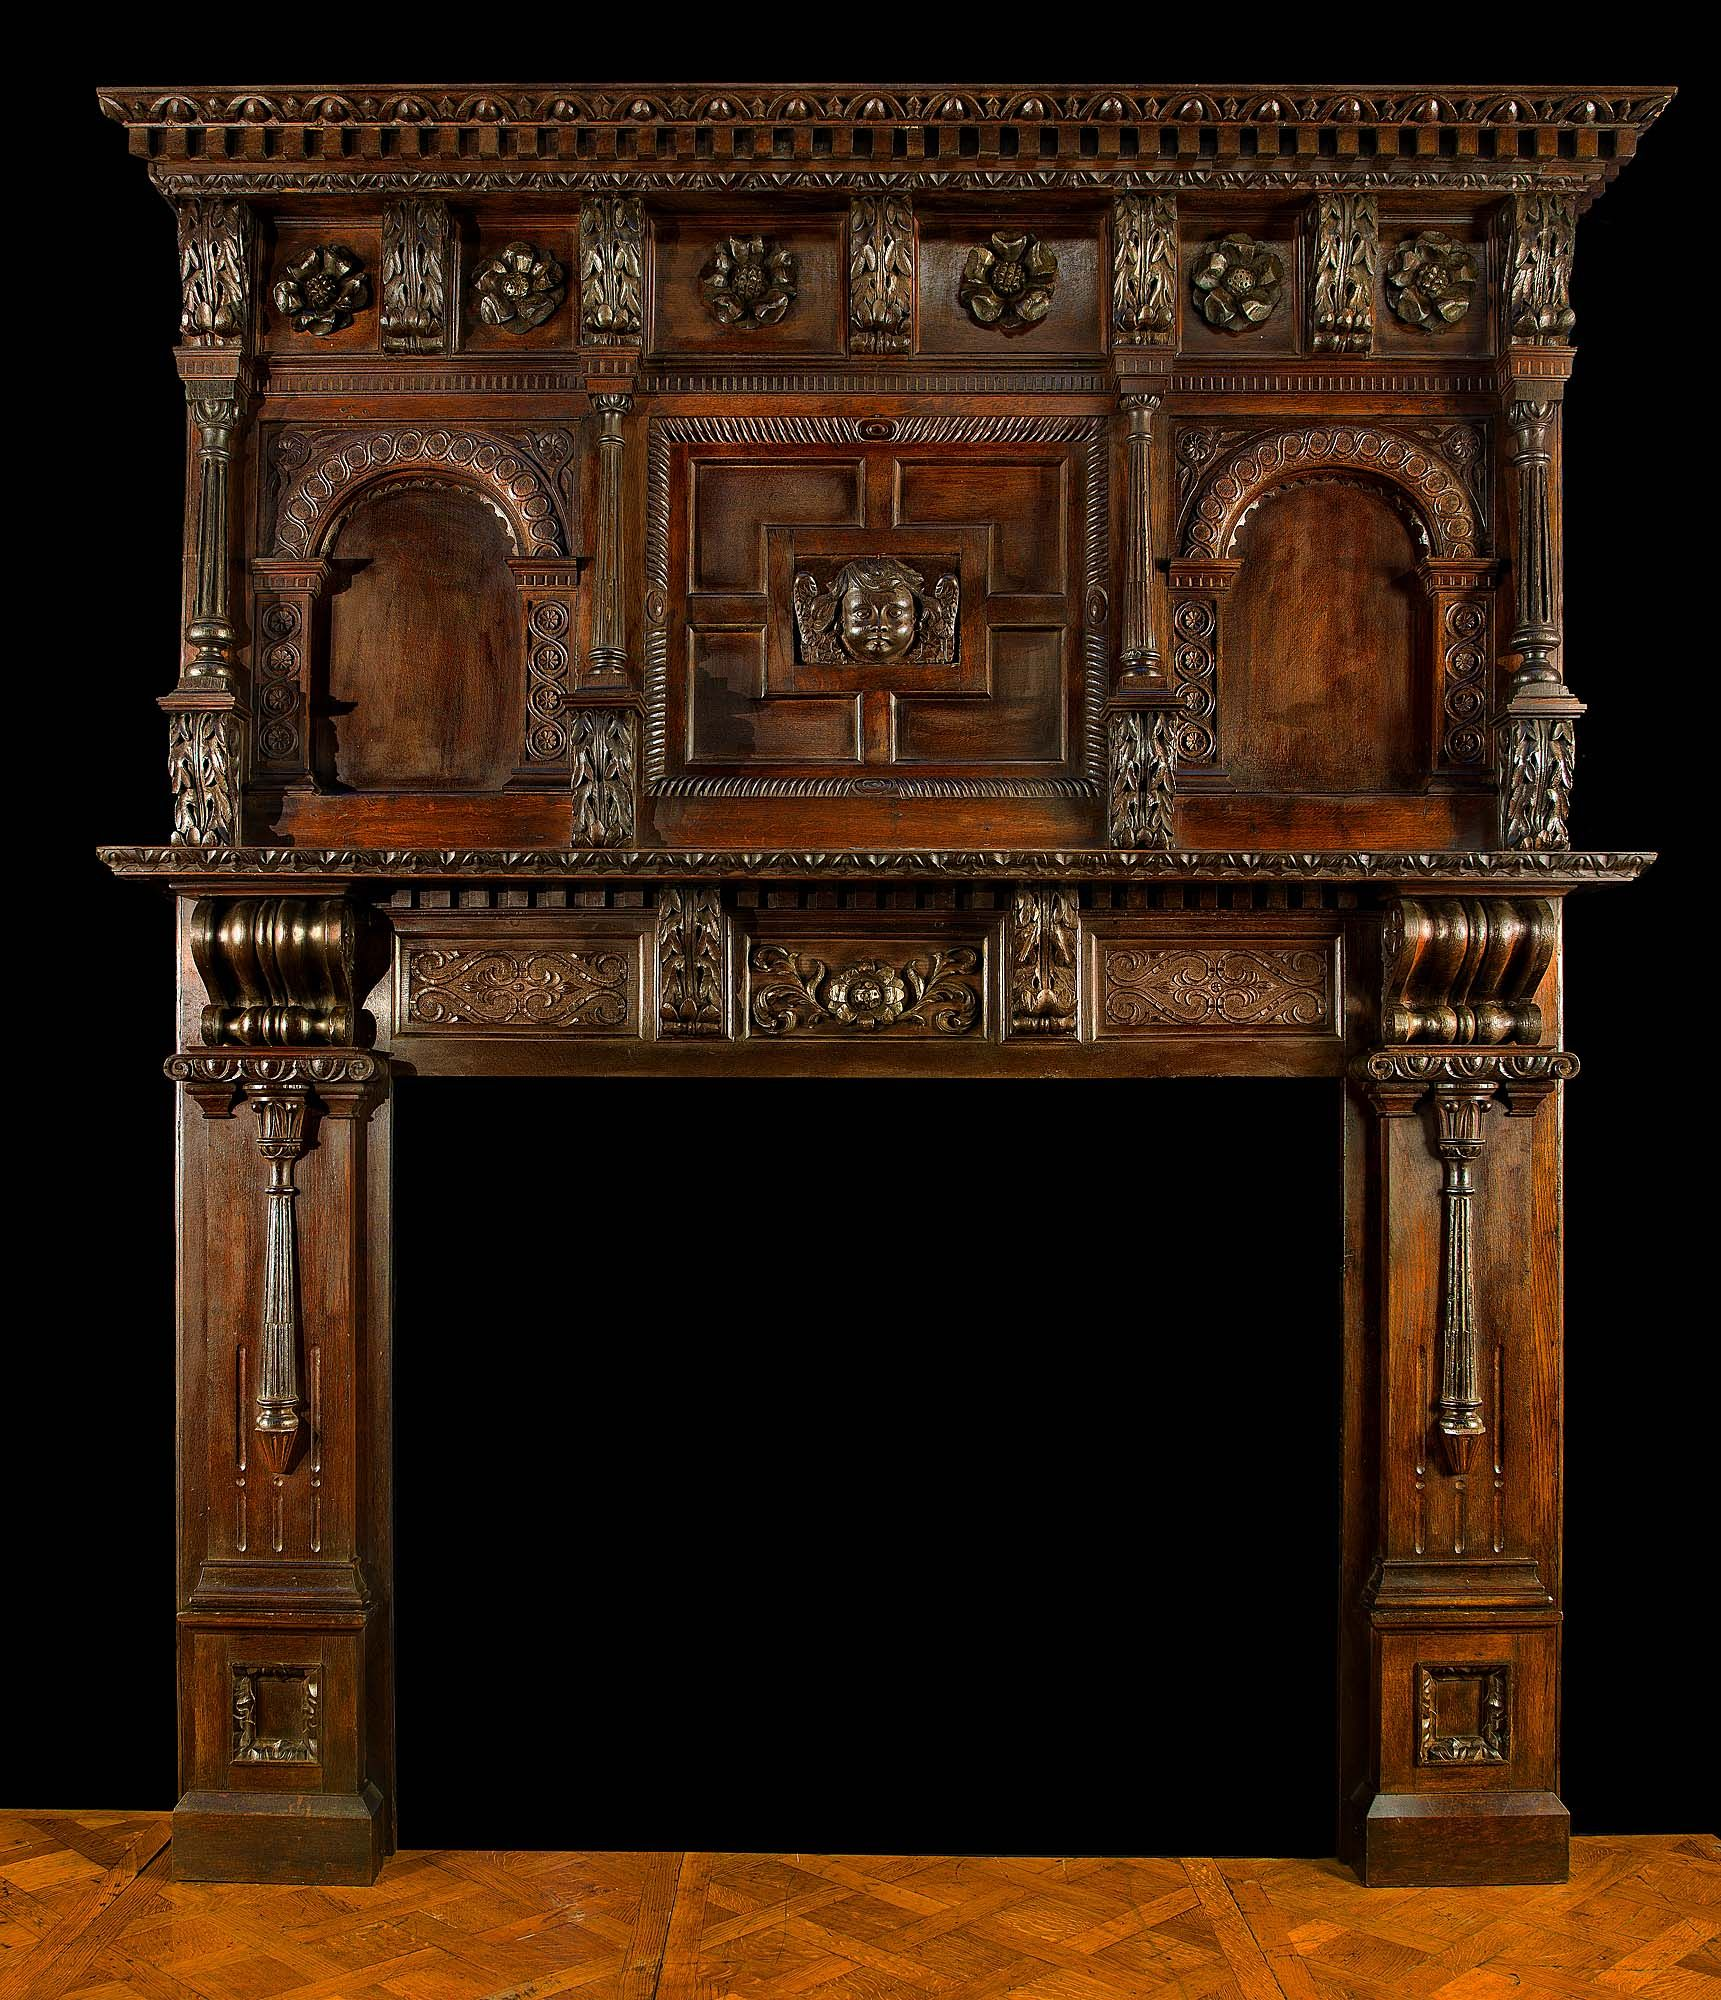 Antique Carved Wood Fireplace In The Jacobean Revival Manner Fireplace Mantels Wood Fireplace Antique Fireplace Mantels